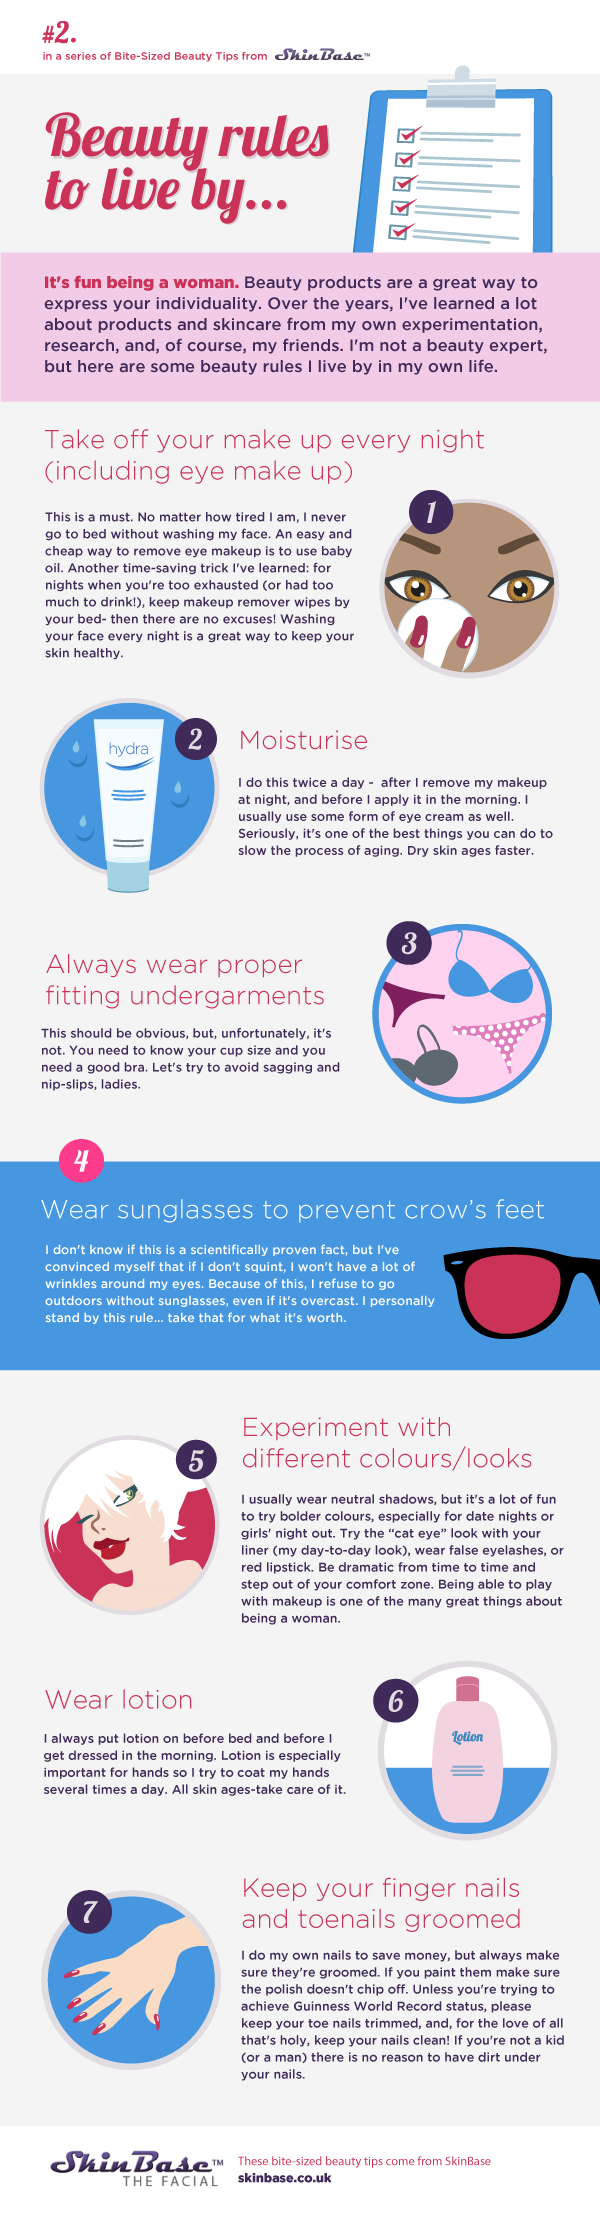 Beauty Rules to Live By [infographic]